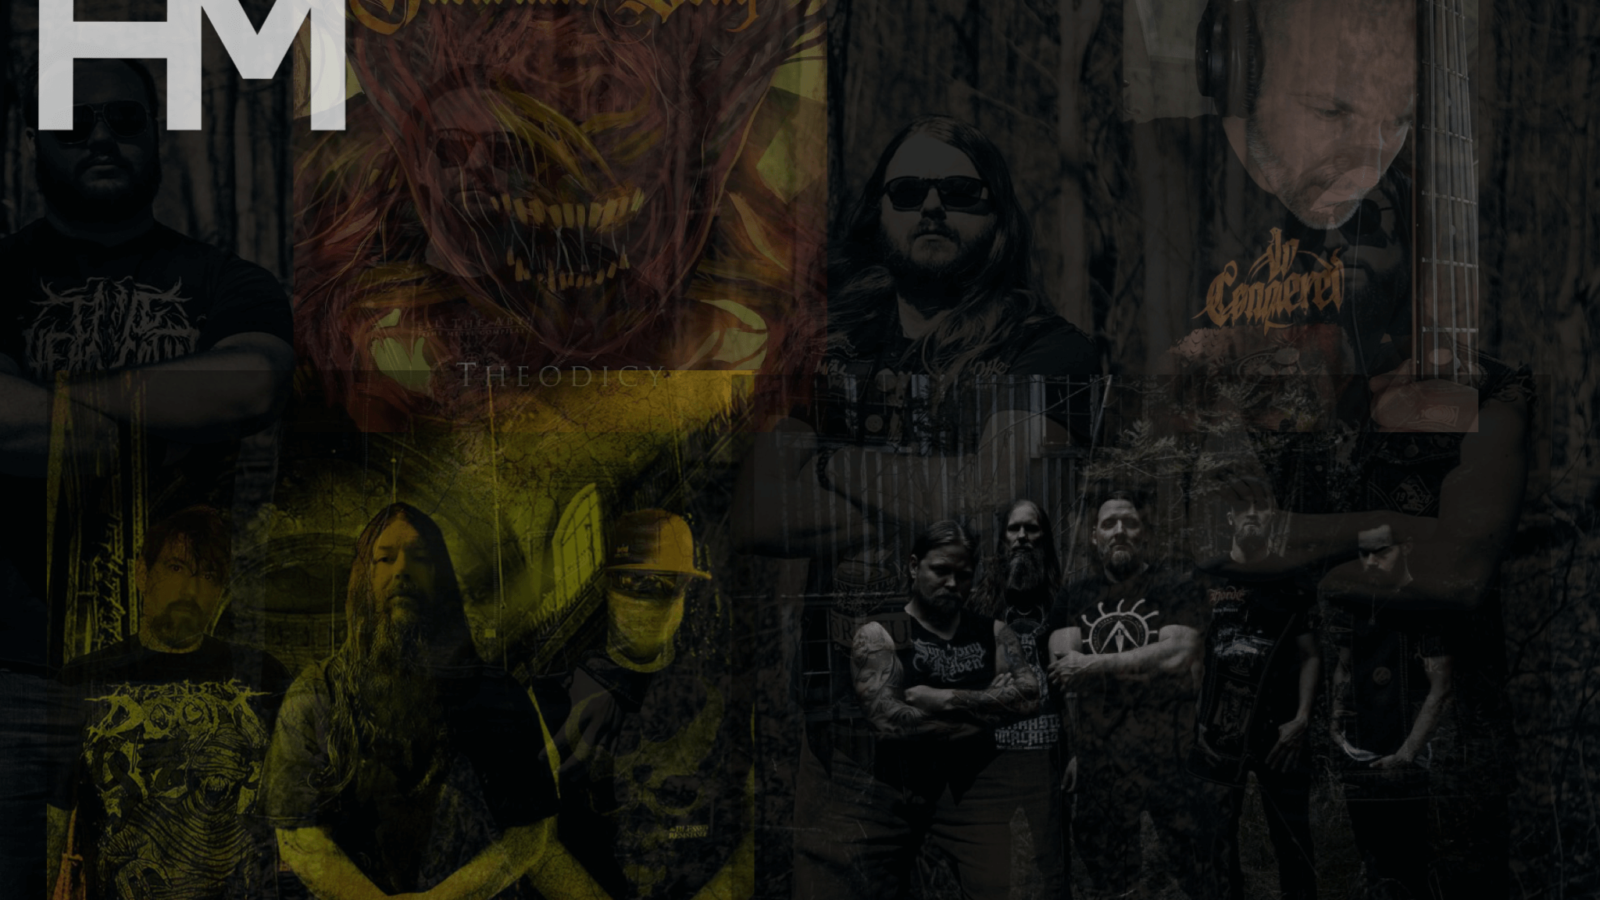 5 death metal bands you need to know